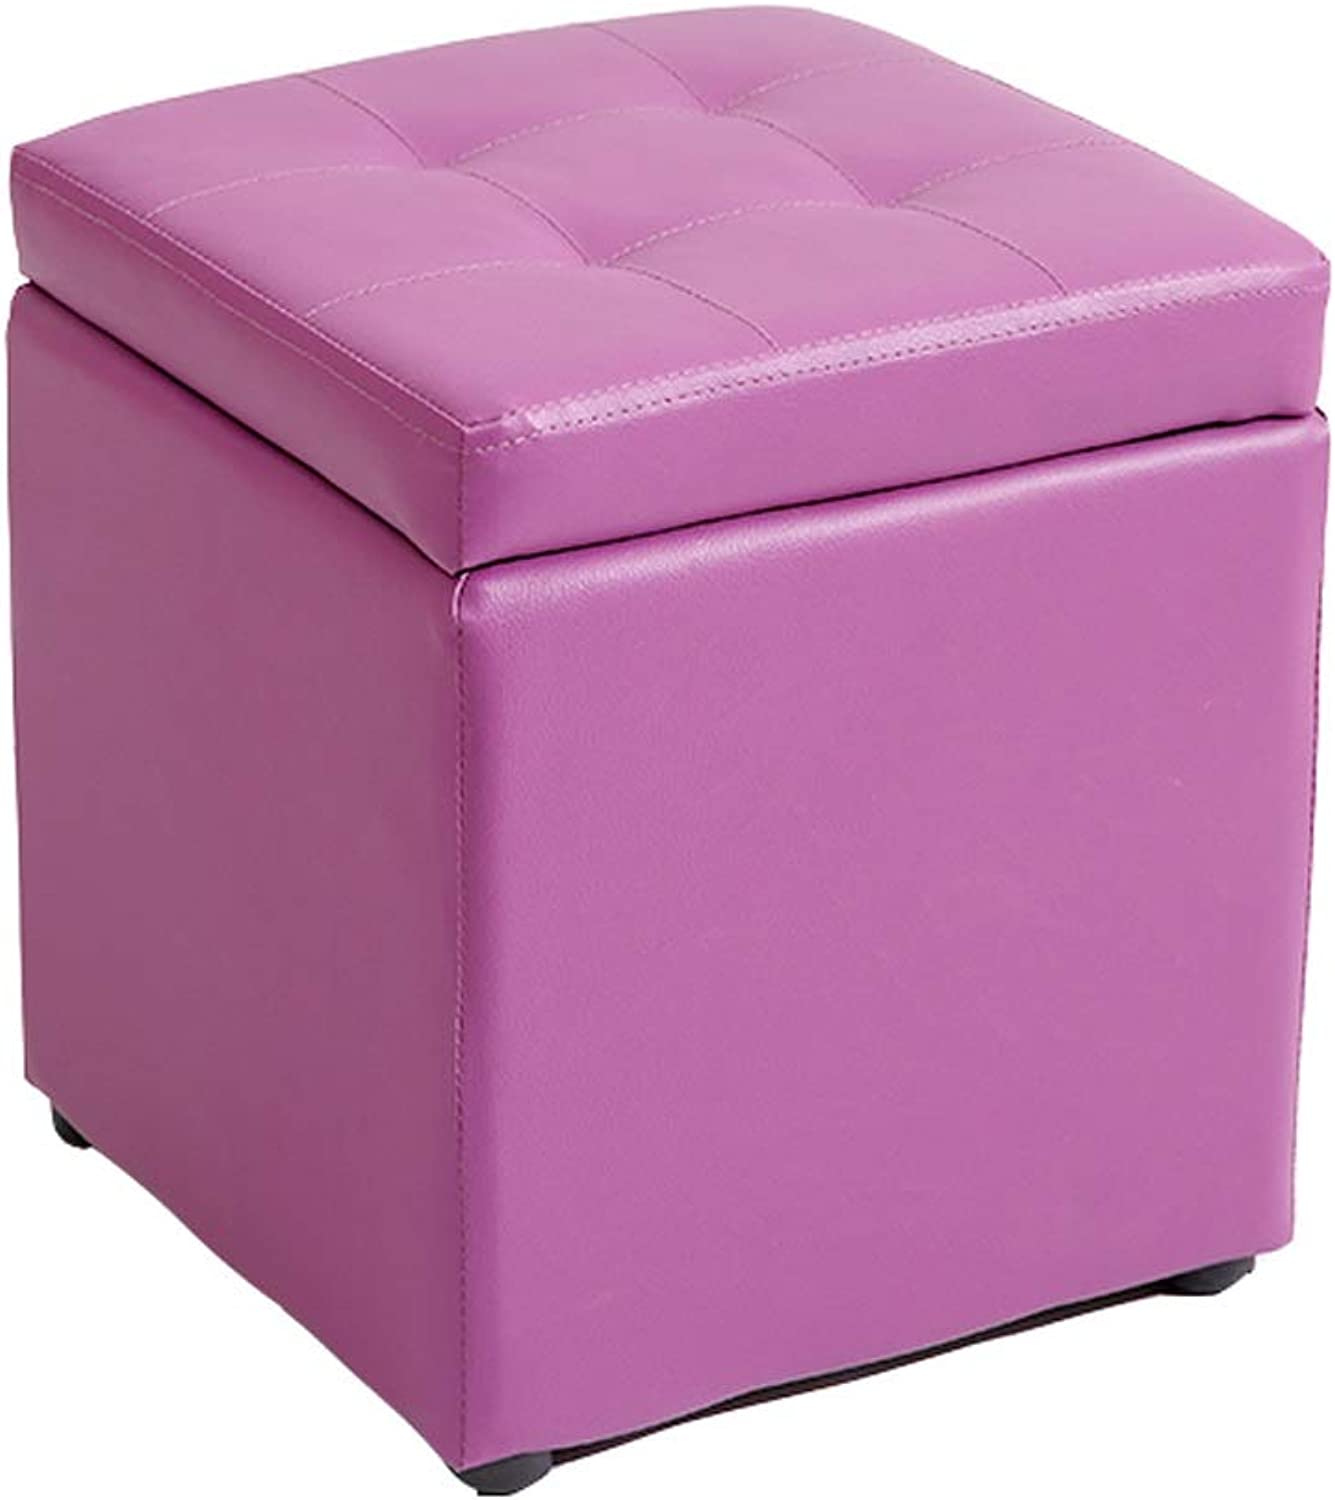 Storage Stool Multi-Function Can Sit PU Leather Storage Stool Non-Slip Foot Storage Square Stool Change shoes Stool Low Stool 30  30  35CM (color   D)